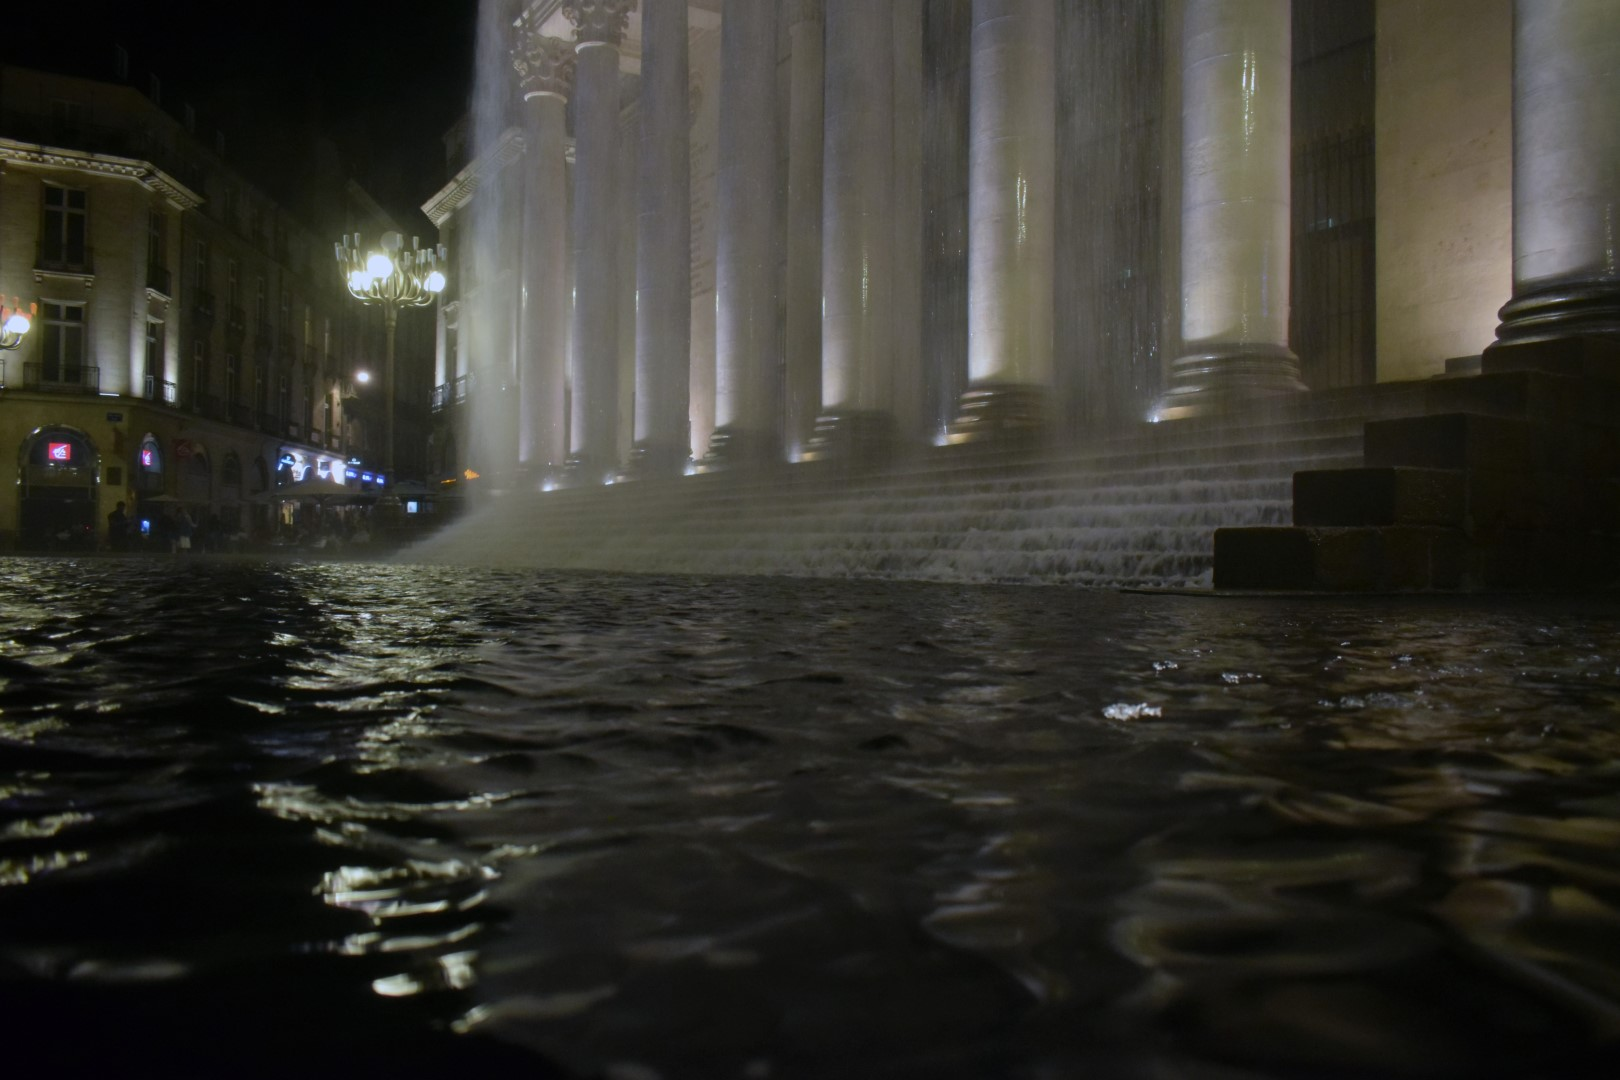 Rudeau d'eau, art installation in front of the opera house, Place Graslin , Nantes